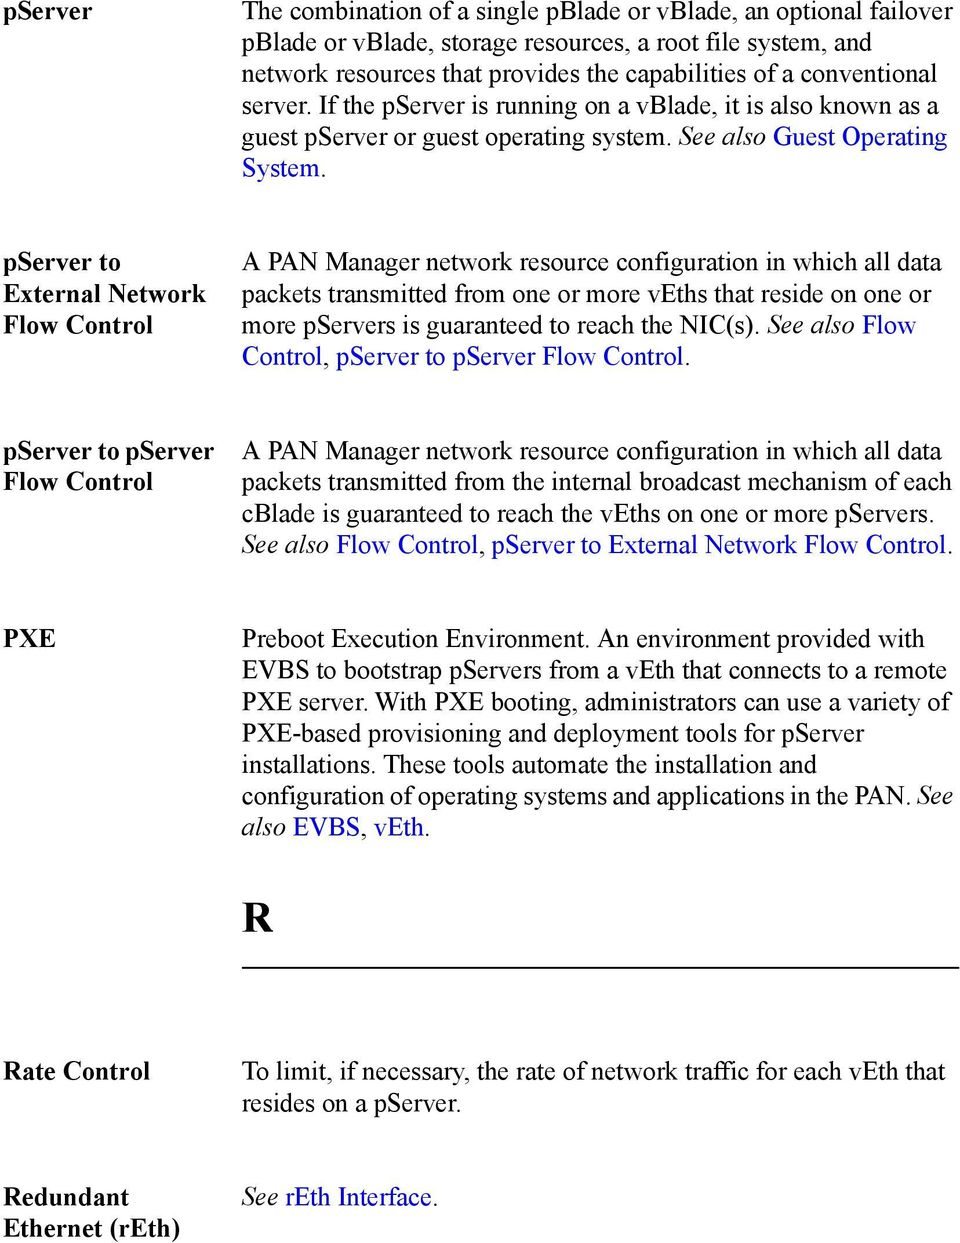 pserver to External Network Flow Control A PAN Manager network resource configuration in which all data packets transmitted from one or more veths that reside on one or more pservers is guaranteed to